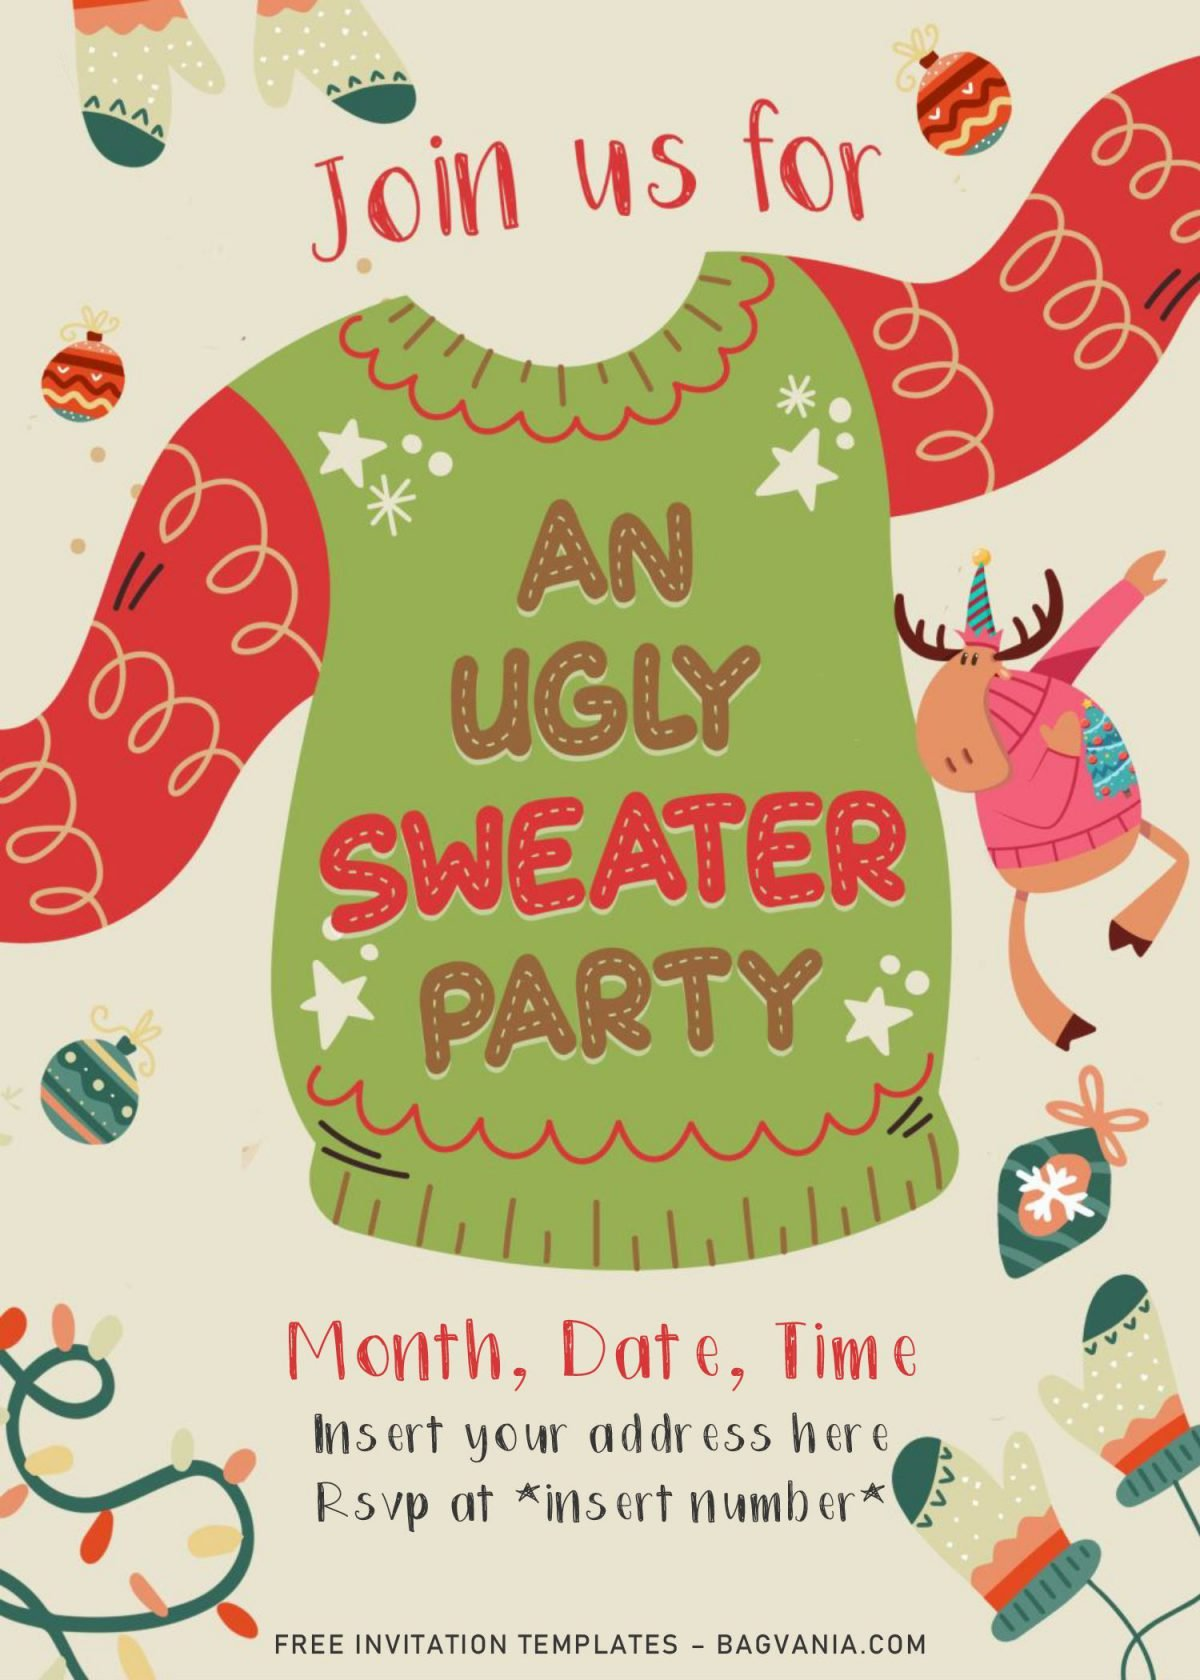 Free Winter Ugly Sweater Birthday Party Invitation Templates For Word and has dabbing deer and Christmas ornaments